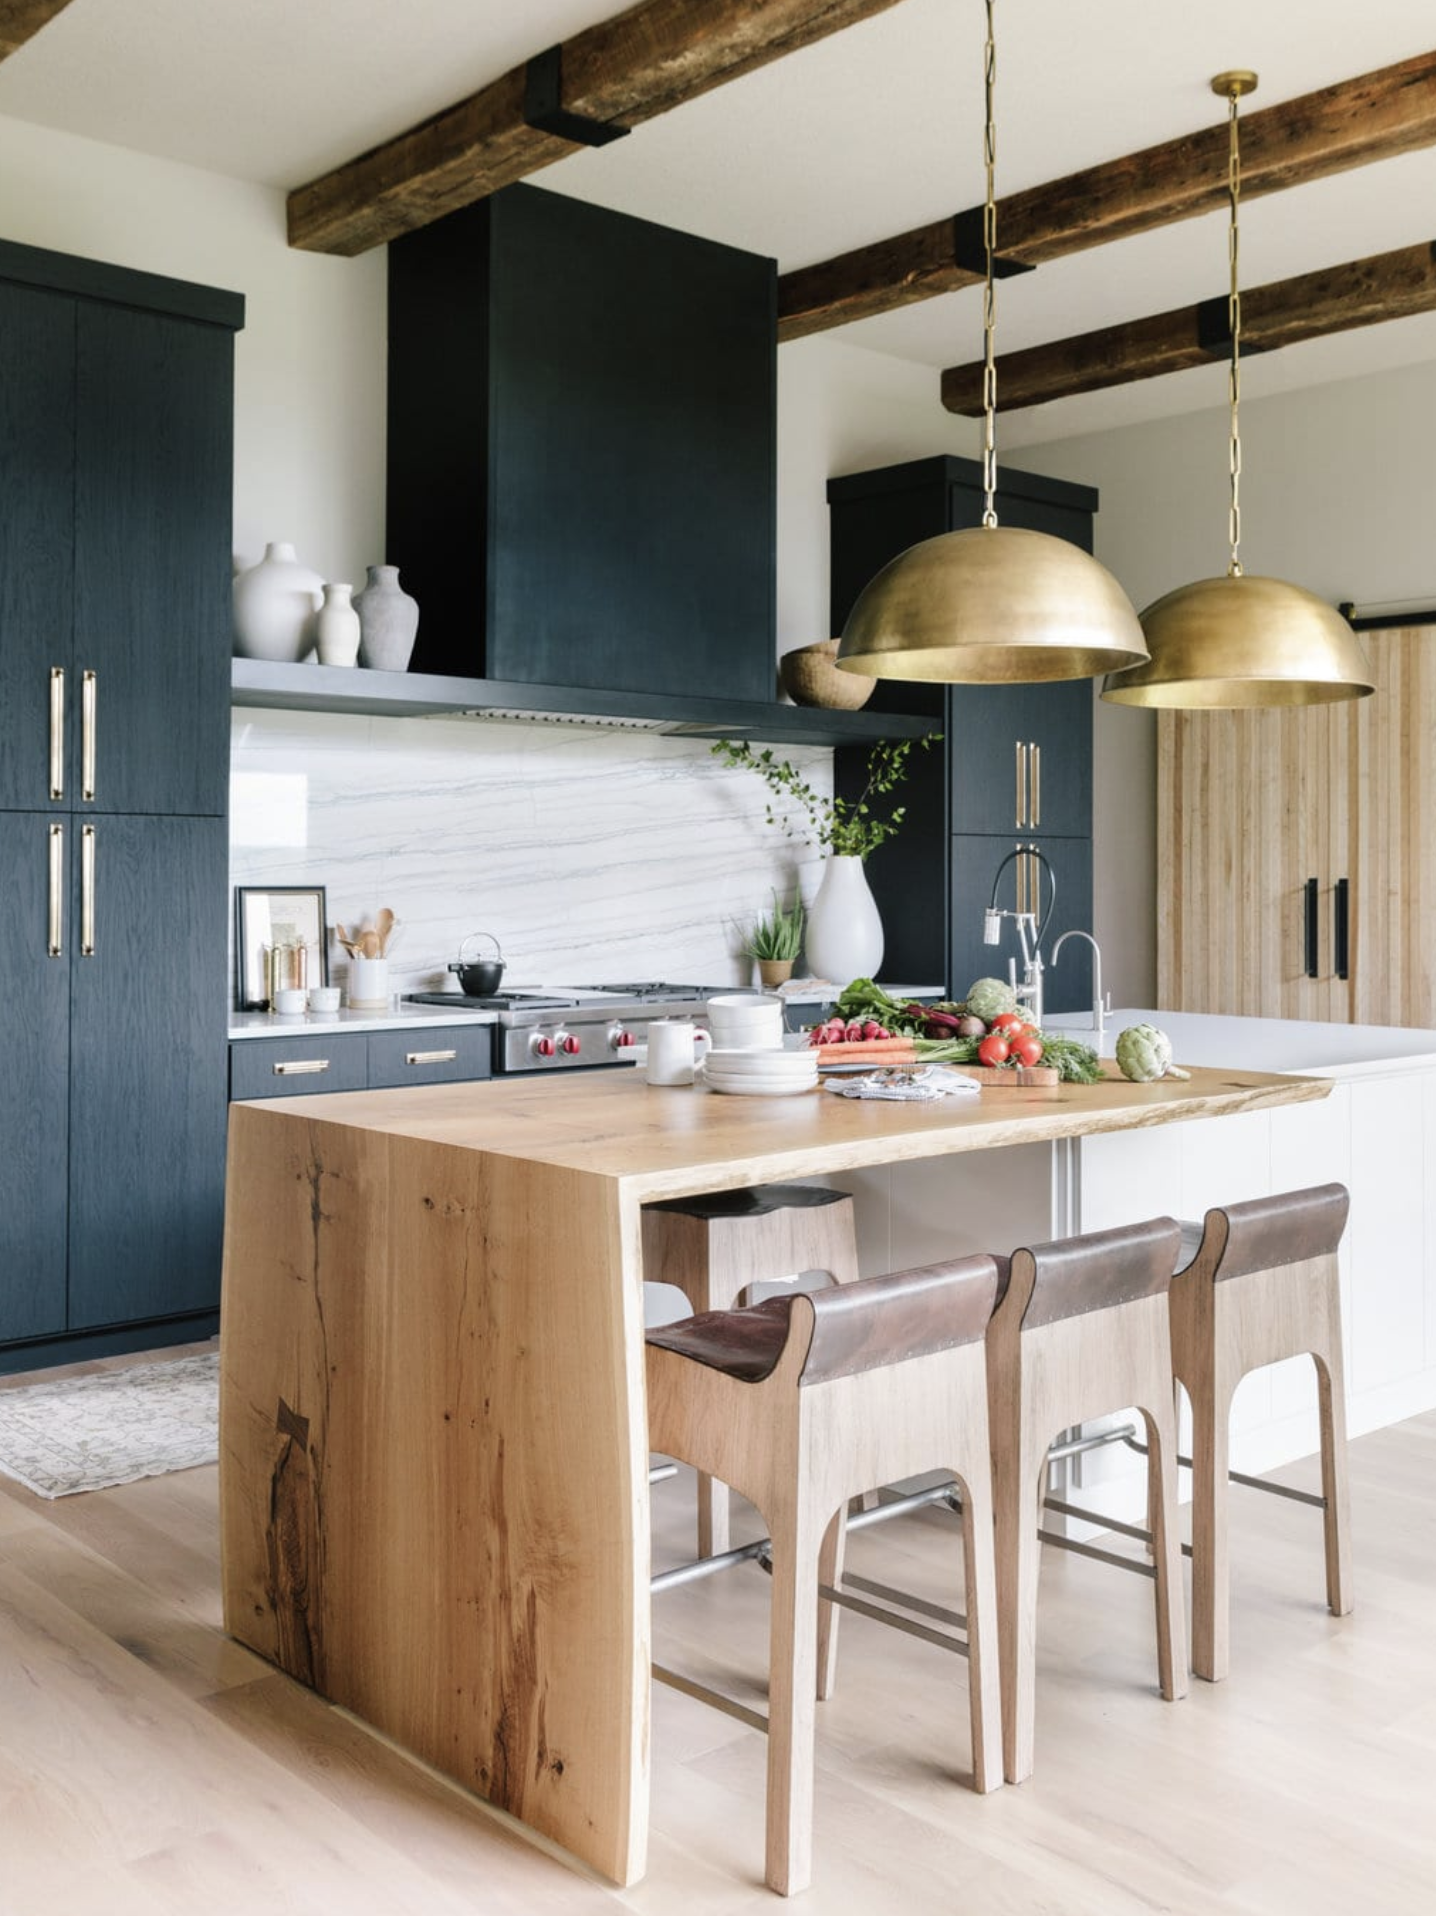 Blonde Wood How To Use It Everywhere The Identite Collective Kitchen Style Kitchen Interior Kitchen Remodel